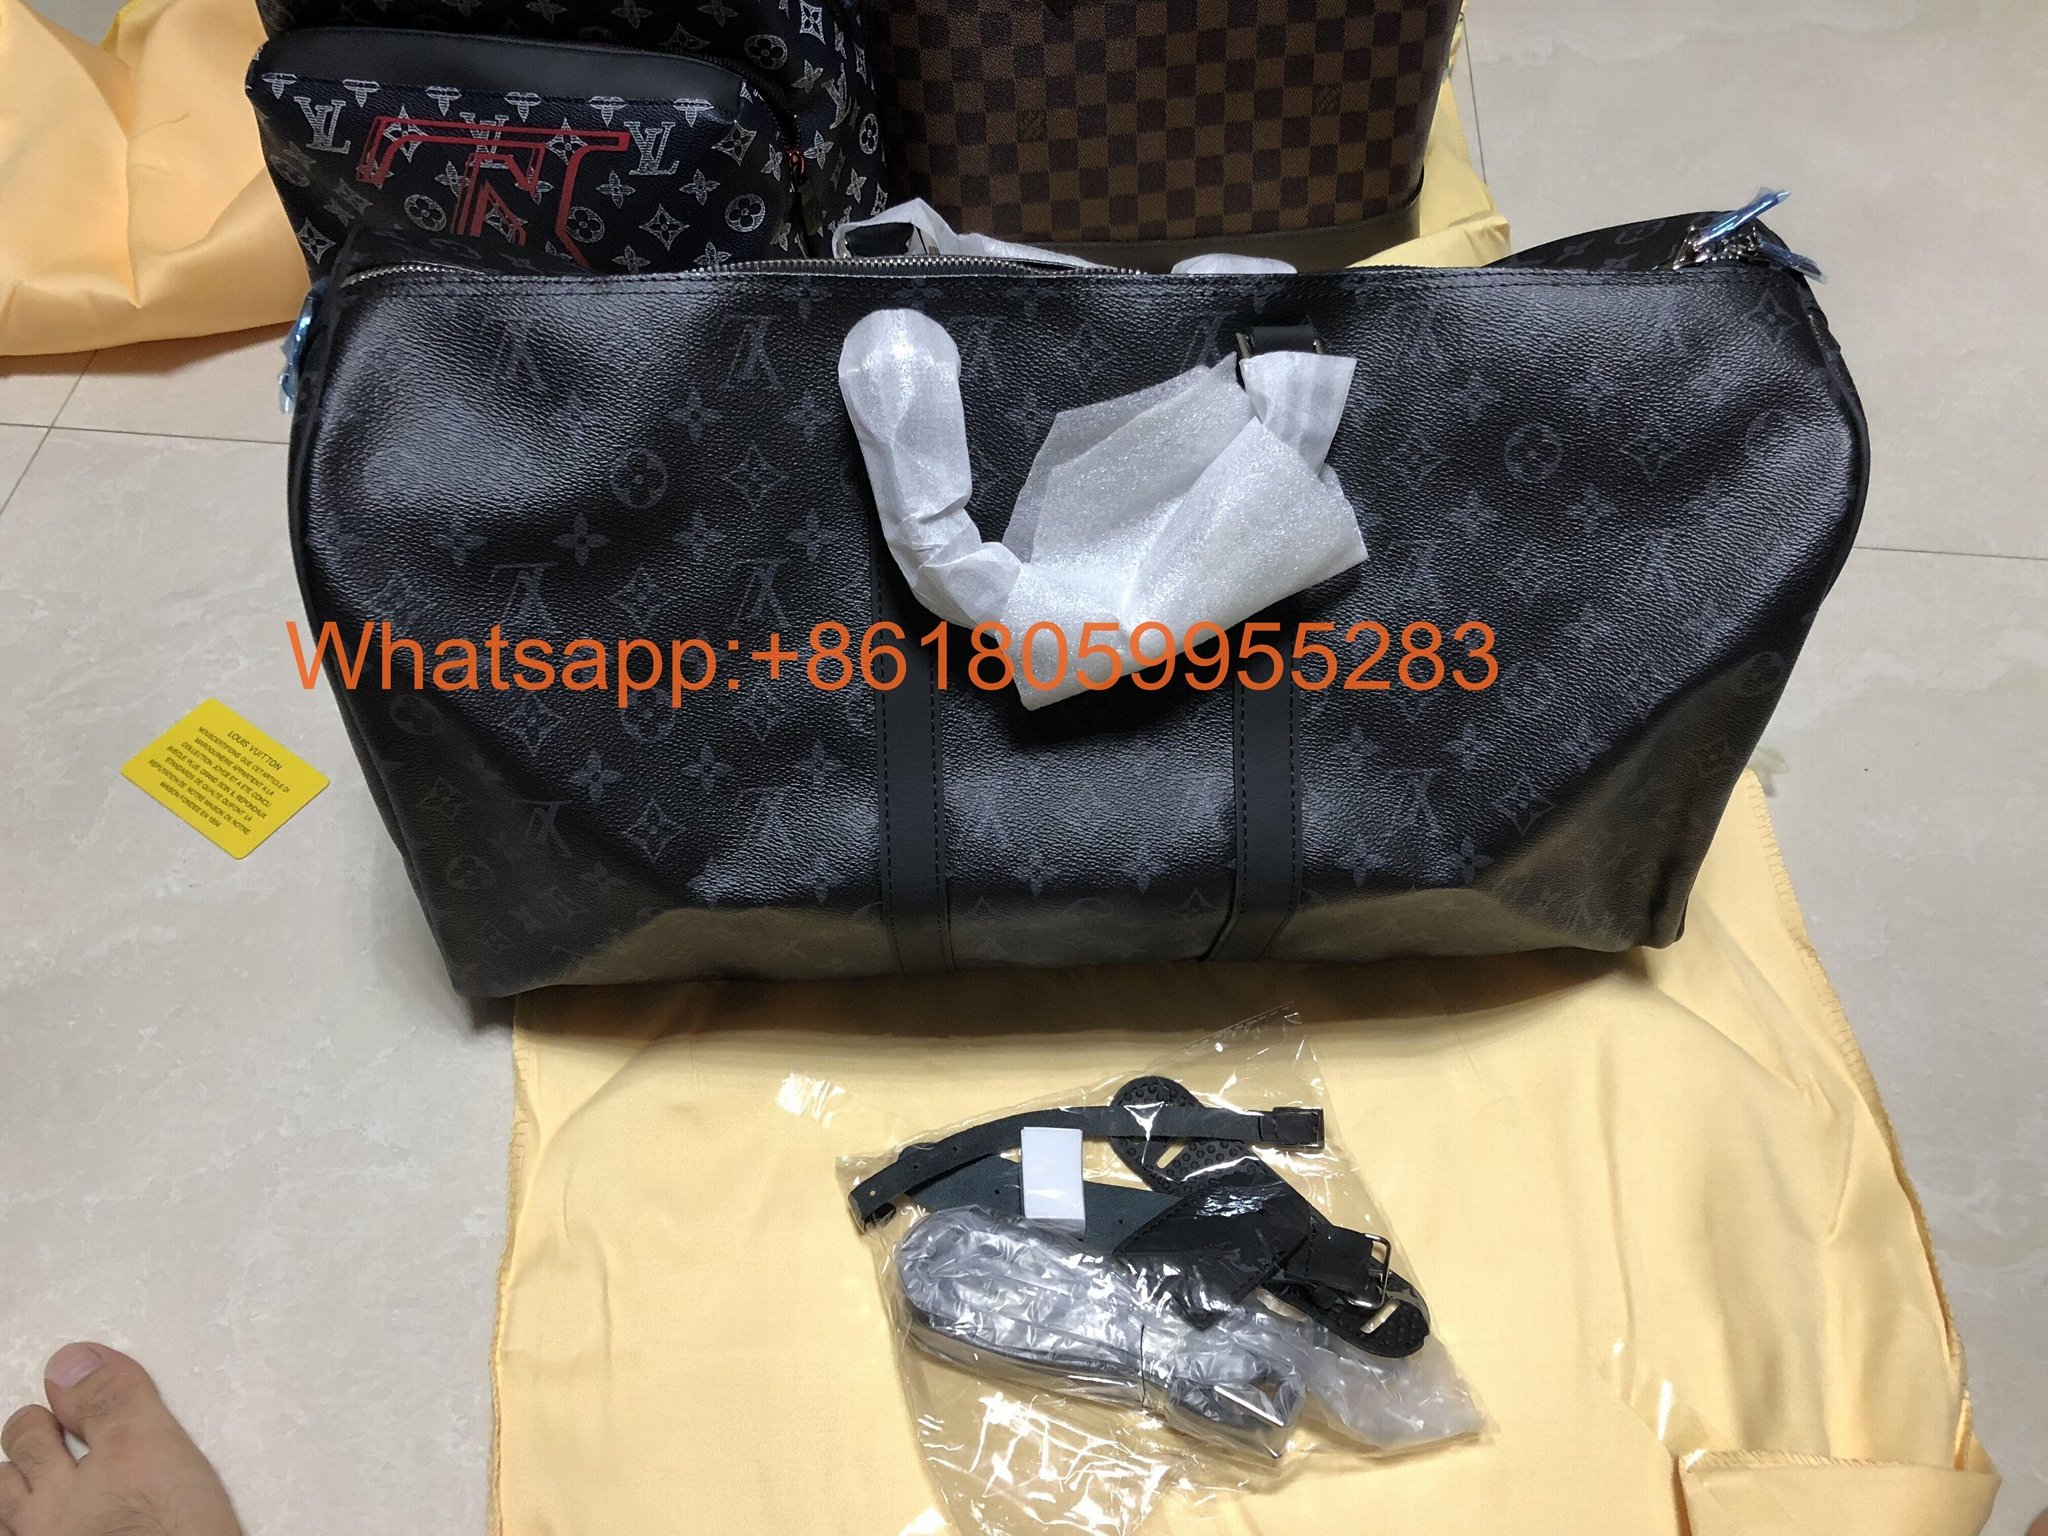 efbf2d6344eb Cheap Louis Vuitton Bags Women LV Handbags Replica Louis Vuitton Handbags  LV Bag ...